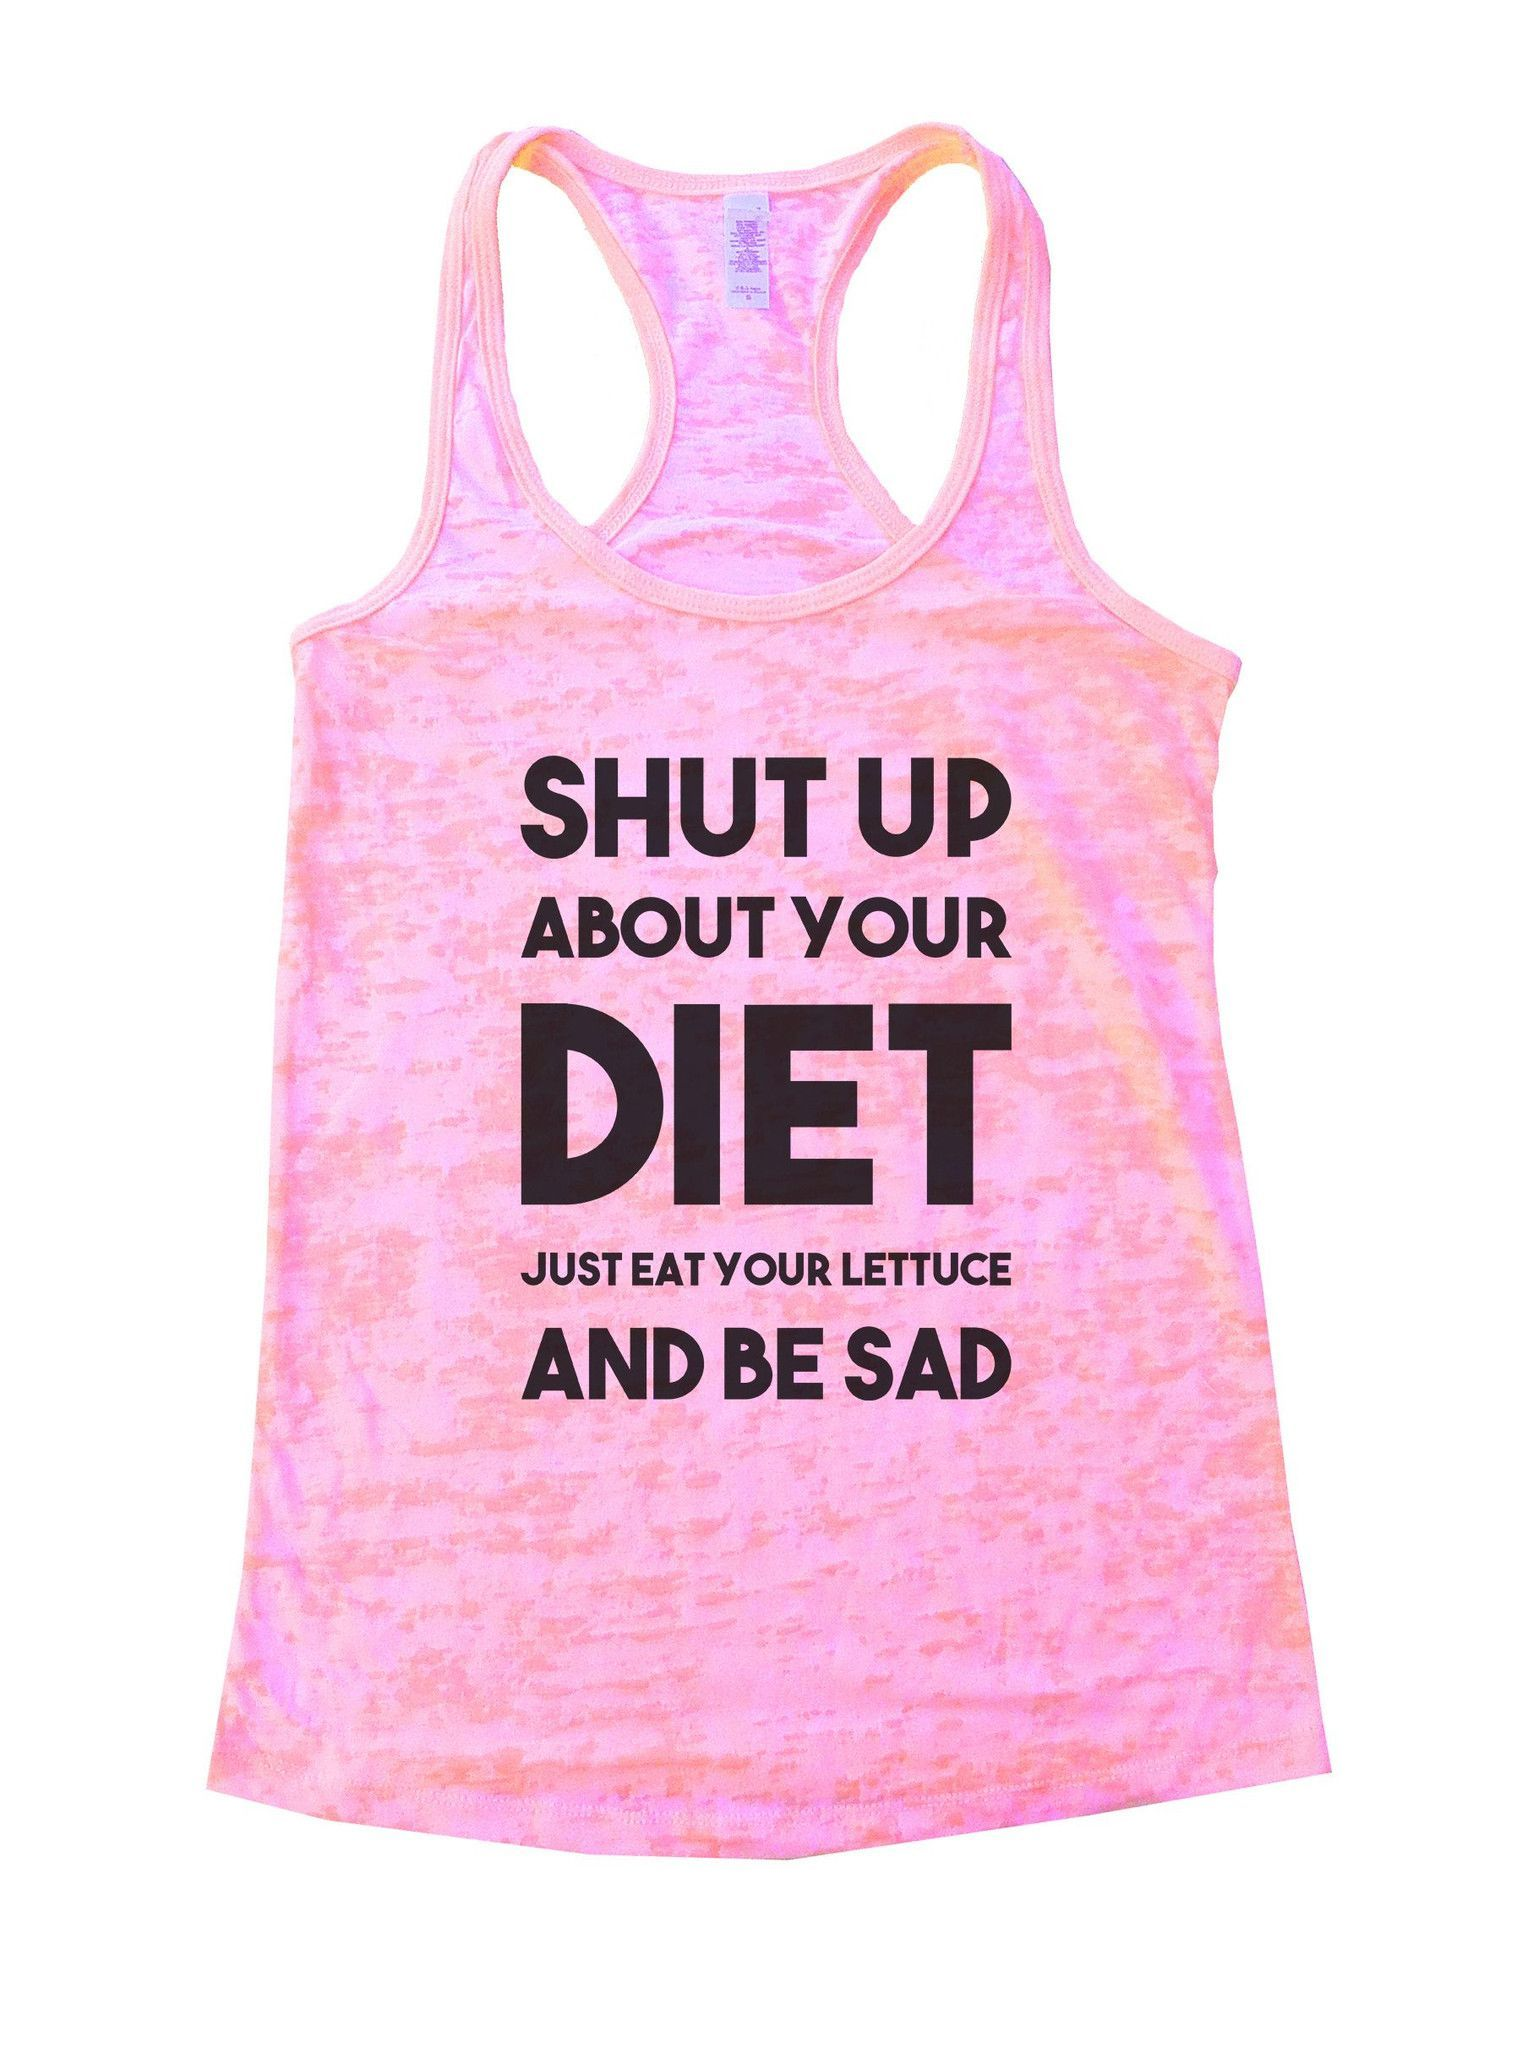 Shut Up About Your Diet Just Eat Your Lettuce And Be Sad Burnout Tank Top By Funny Threadz - 856